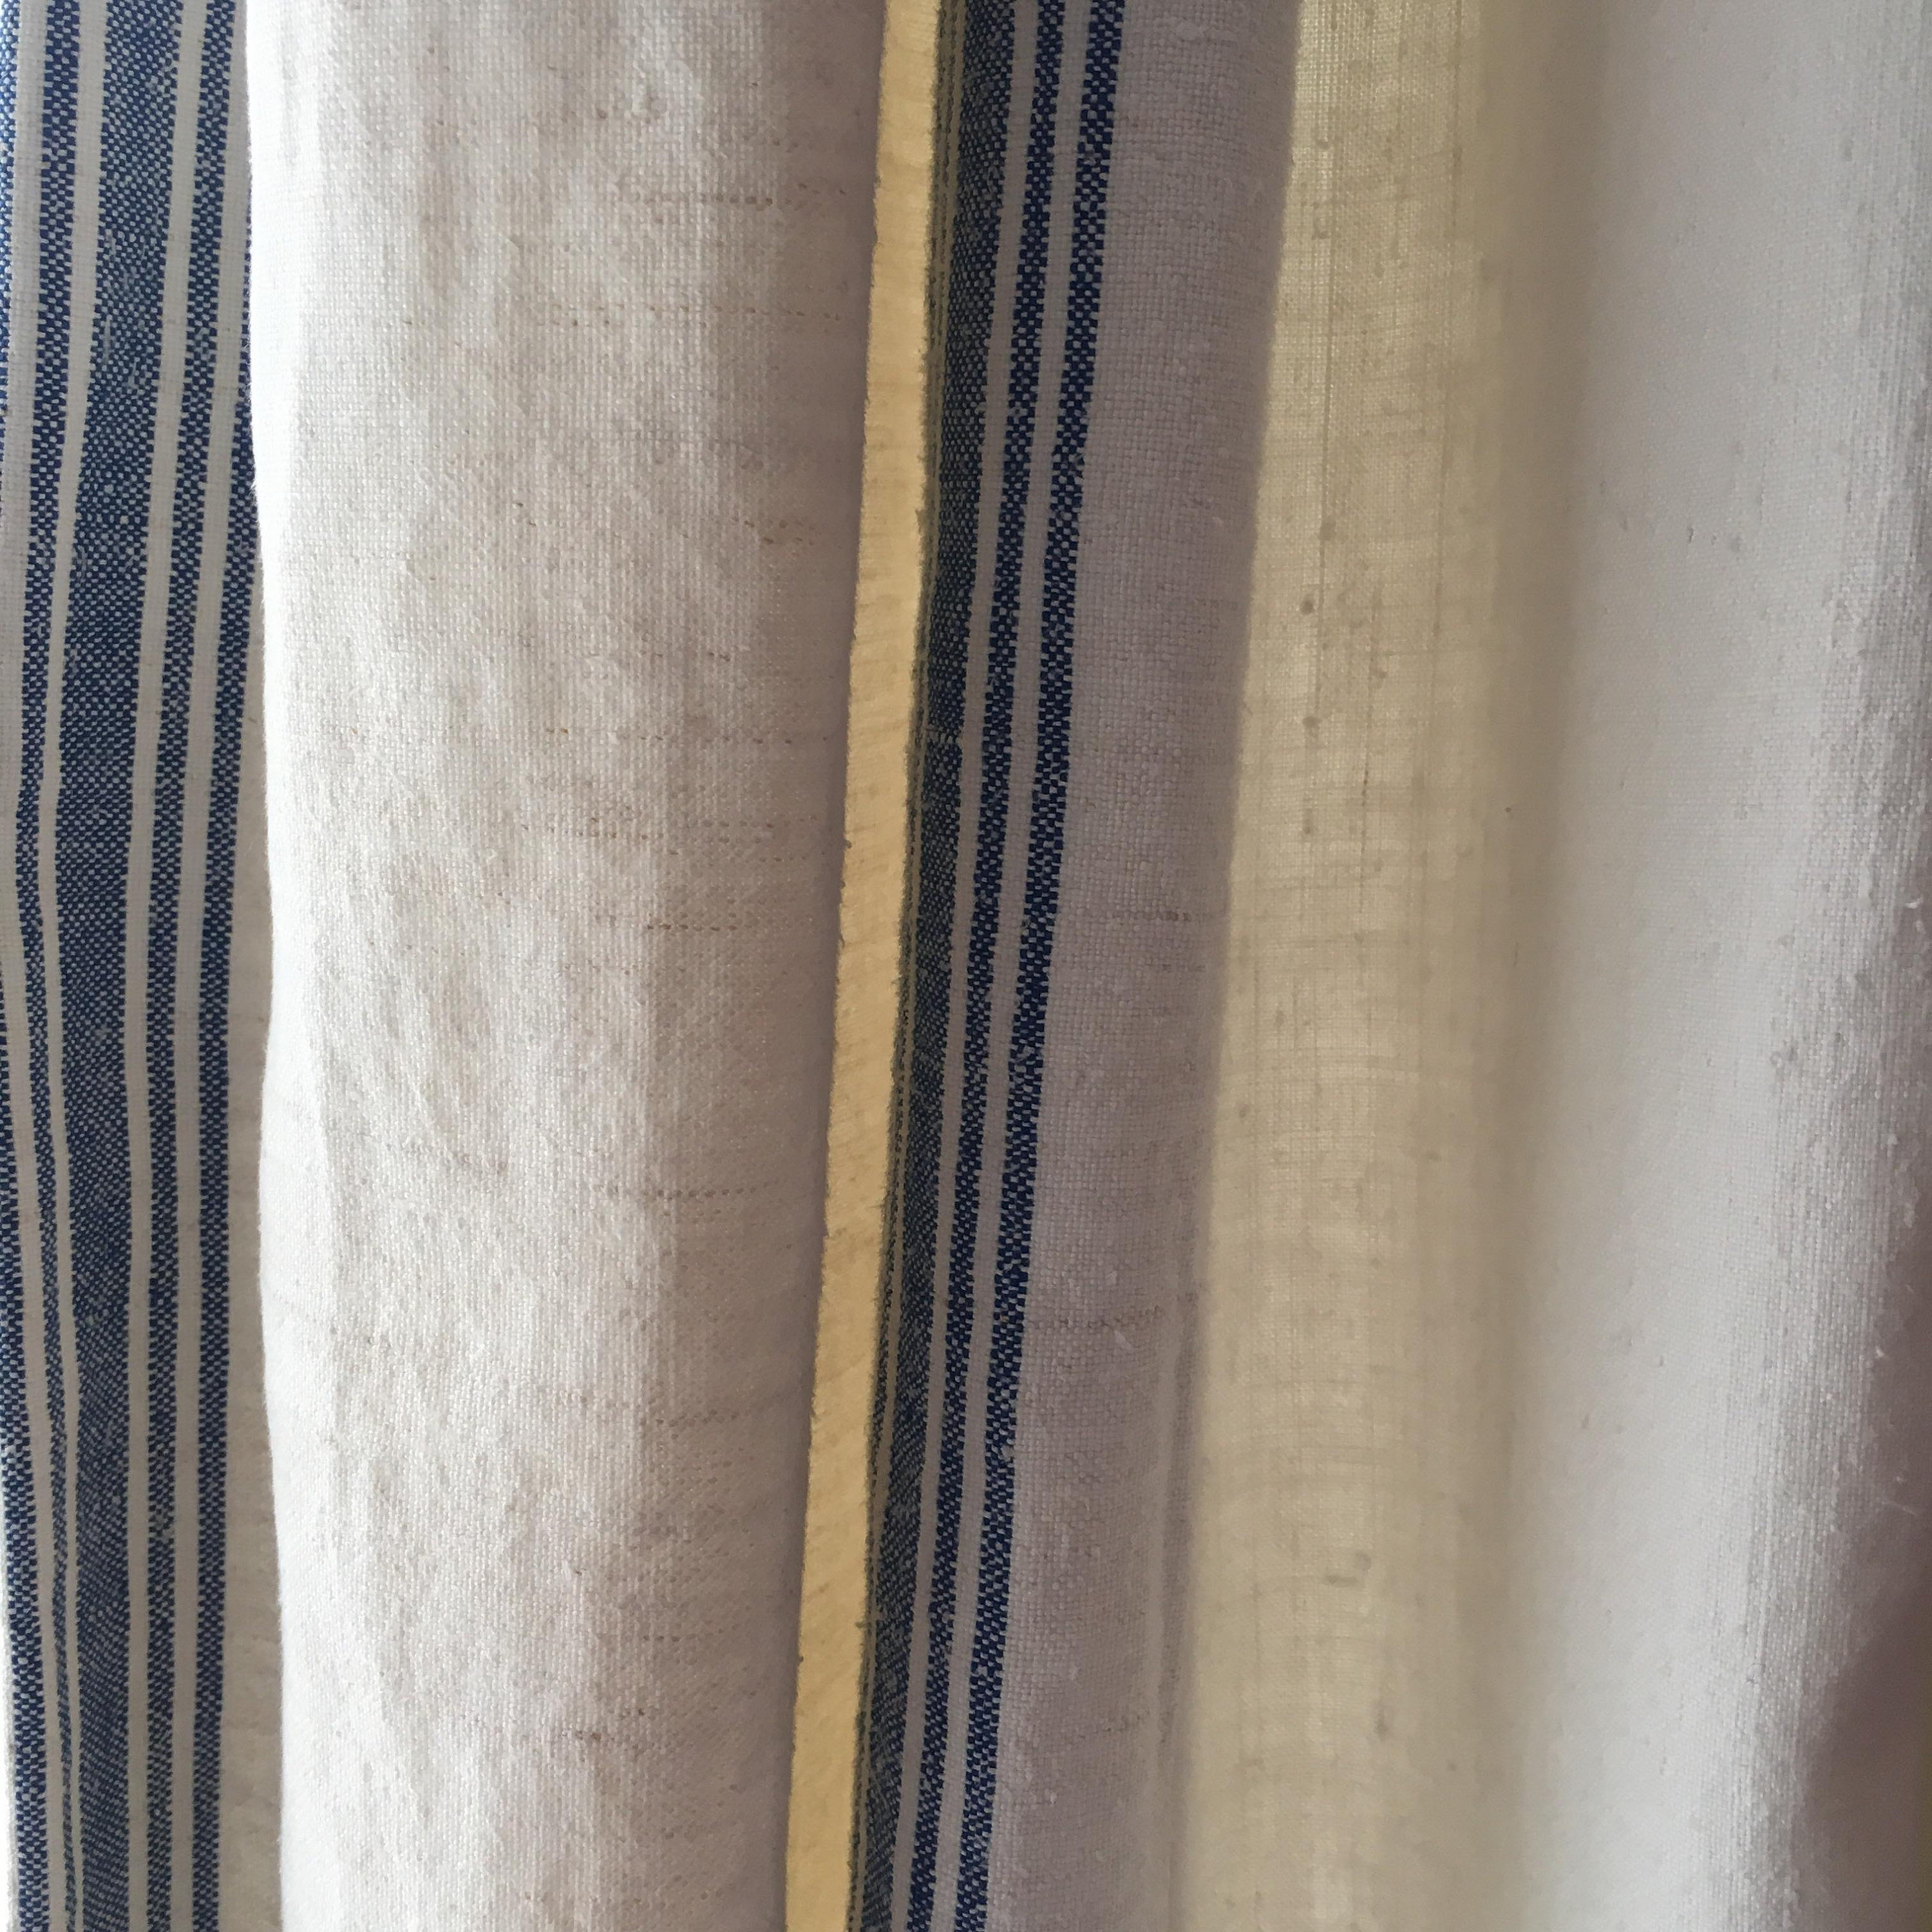 Stripes from a roll of vintage linen joined to a sheet